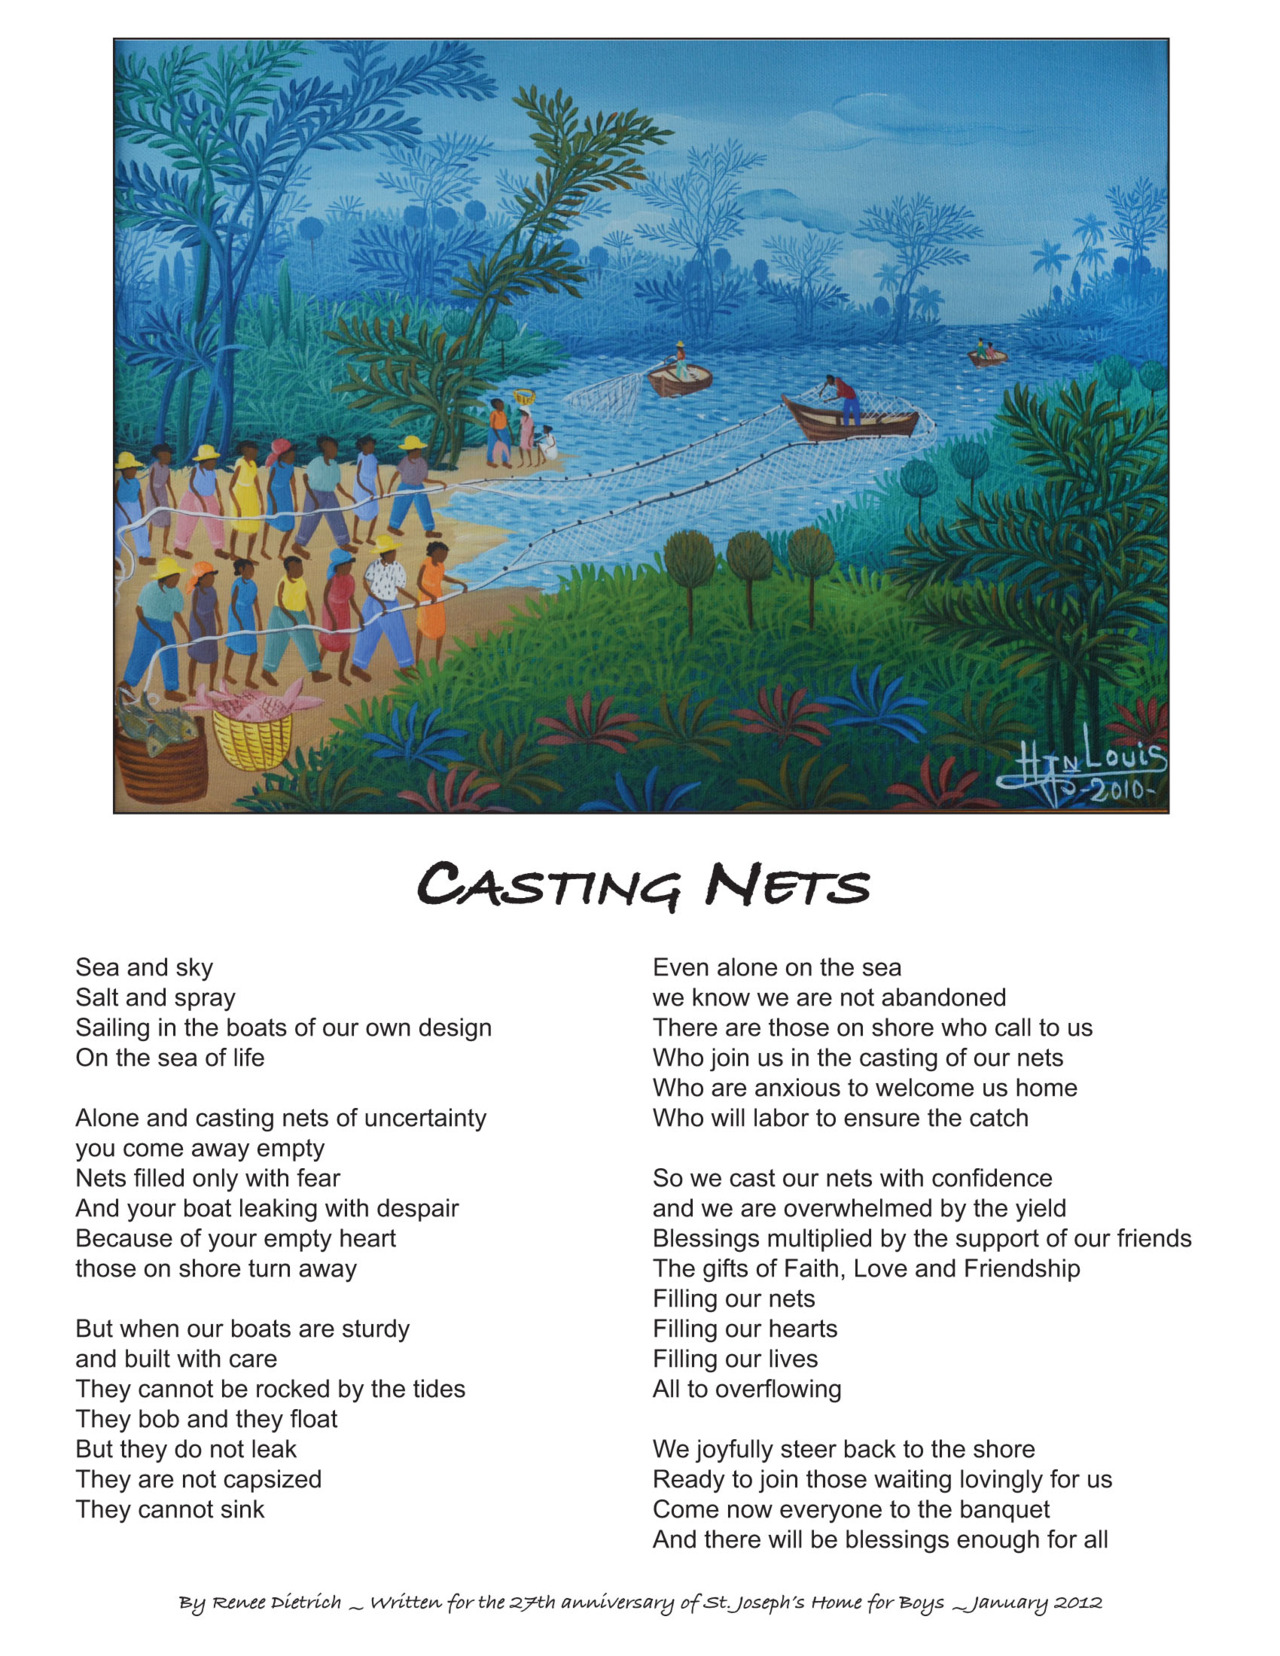 A poem written by Renee Dietrich for the celebration of St. Joseph's 27th anniversary, along with this year's painting. Both are St. Joseph's anniversary traditions.